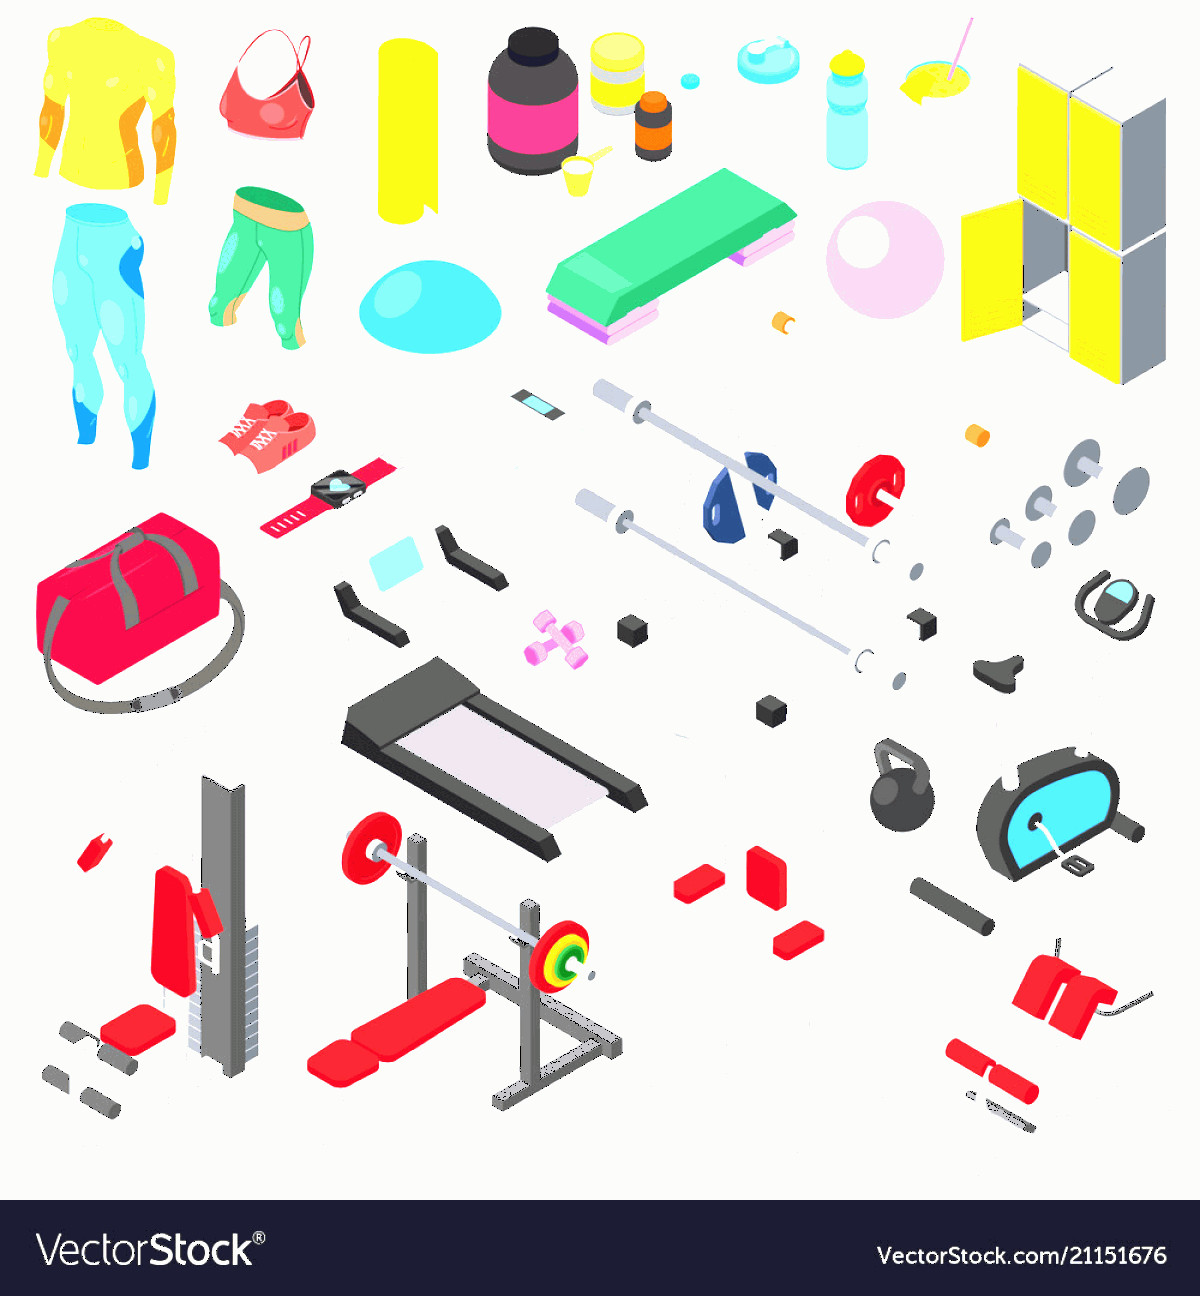 Vector Gym Equipment: Fitness Equipment Gym Machine For Doing Vector